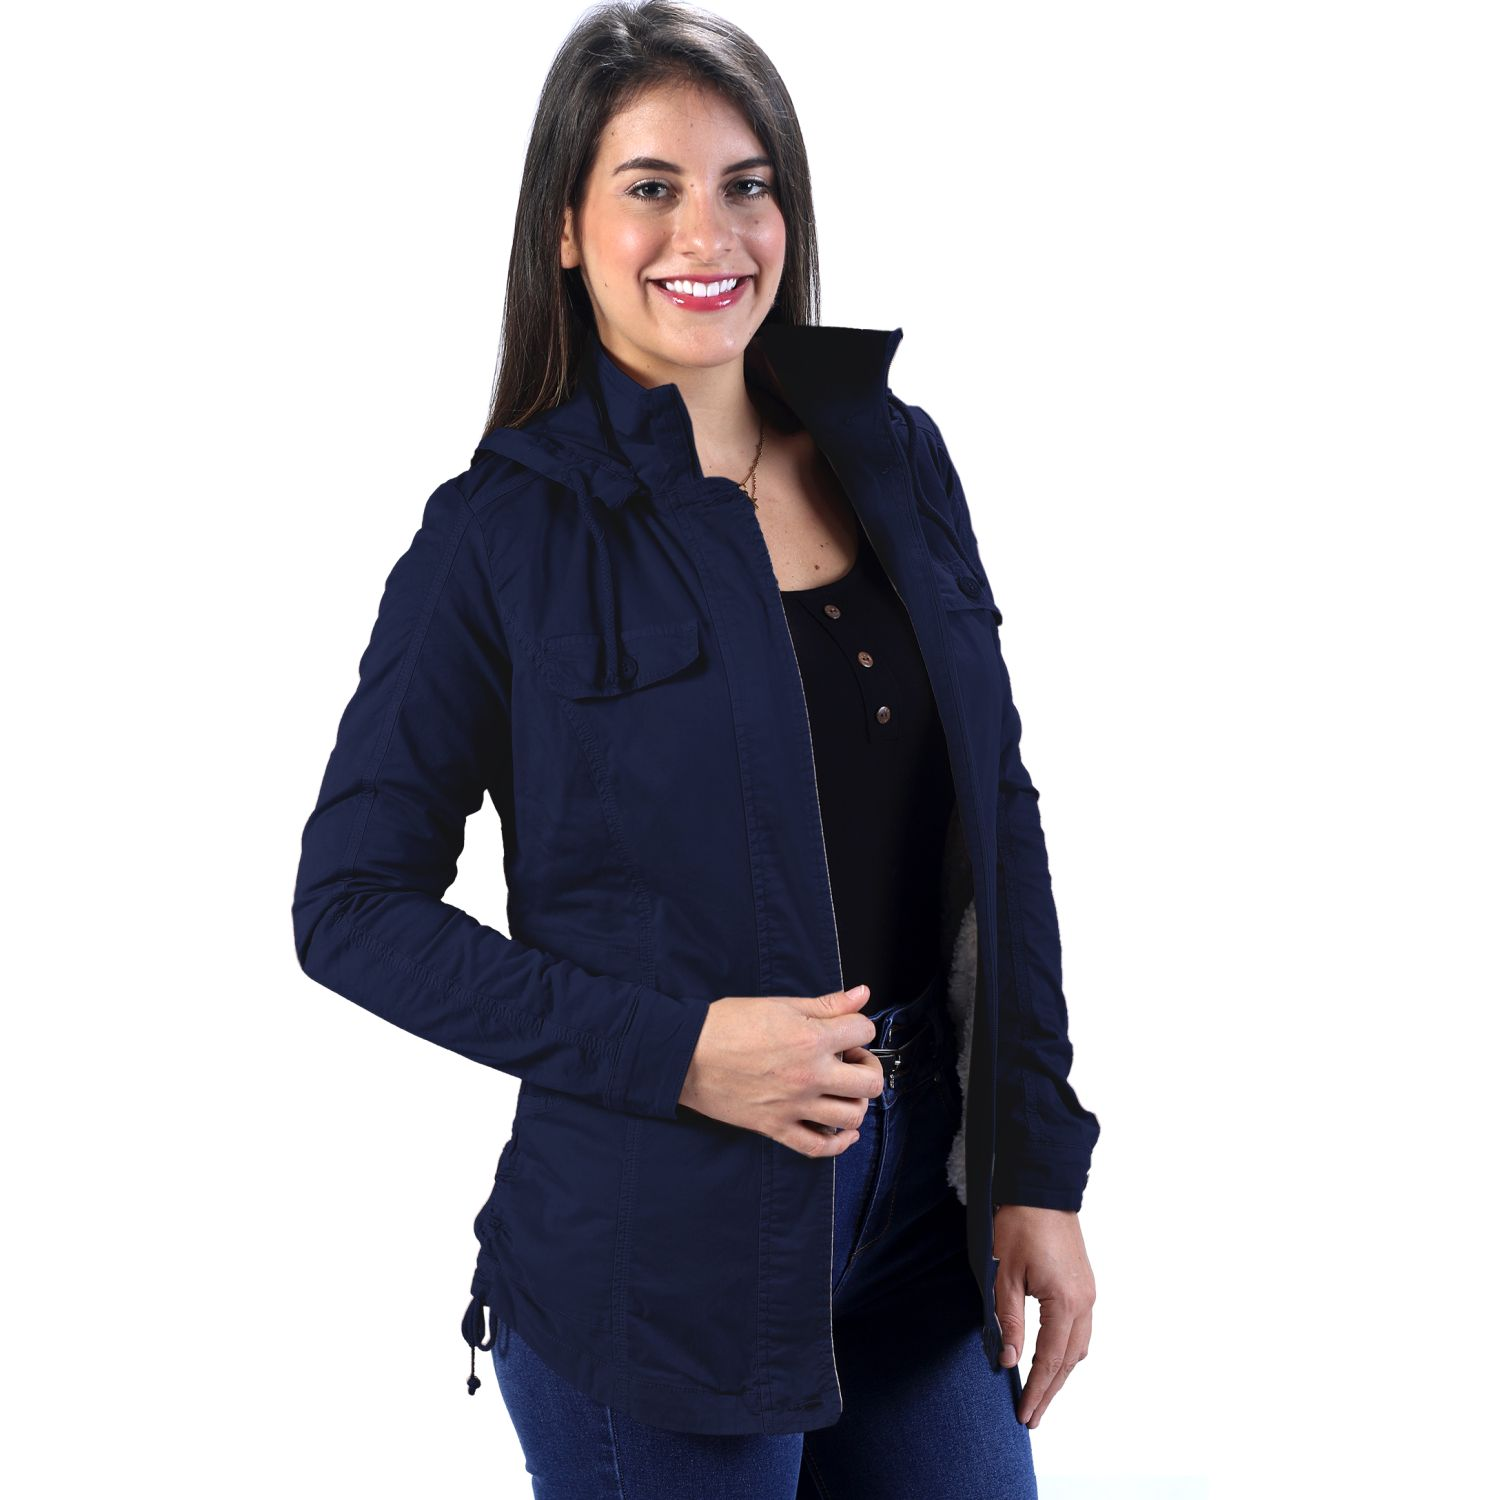 FORDAN JEANS Campera 0500 C/Capucha-Forro BLUE NAVY Parkas